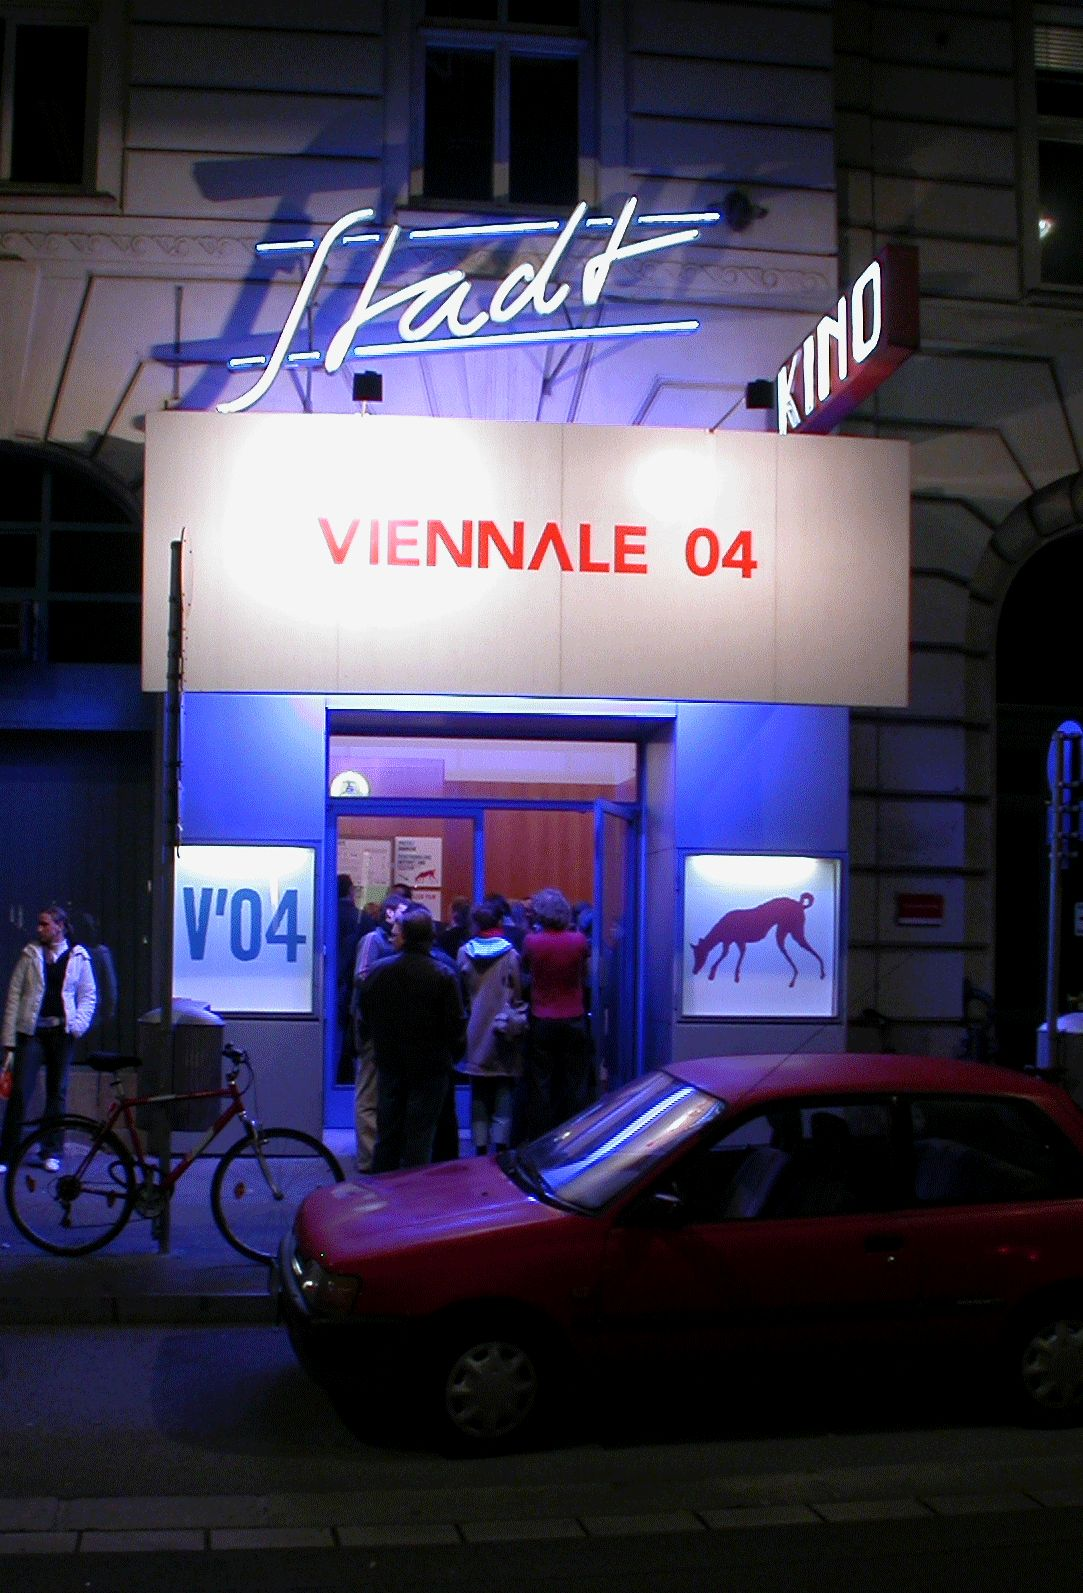 https://i2.wp.com/upload.wikimedia.org/wikipedia/commons/6/65/Viennale-04-Stadtkino.jpg